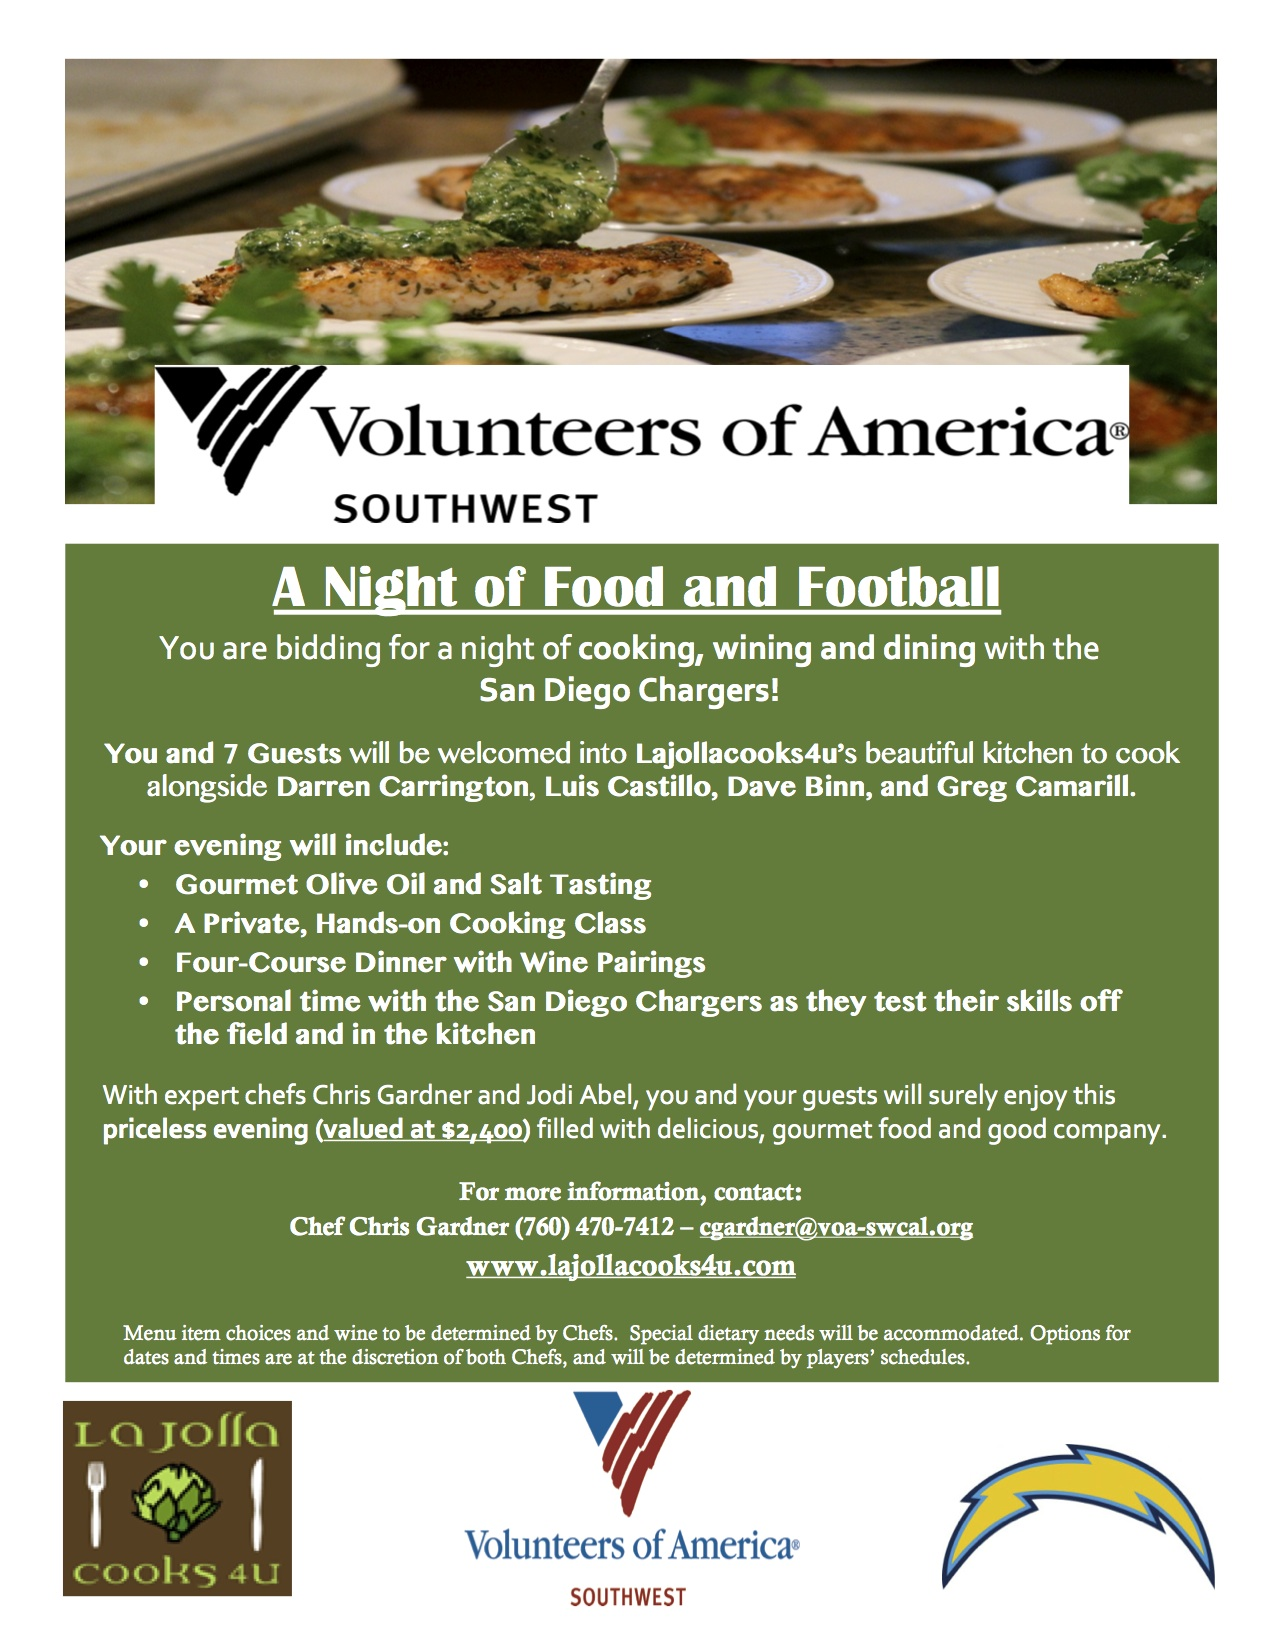 Lajollacooks4u Cooking for Charity A Night of Food and